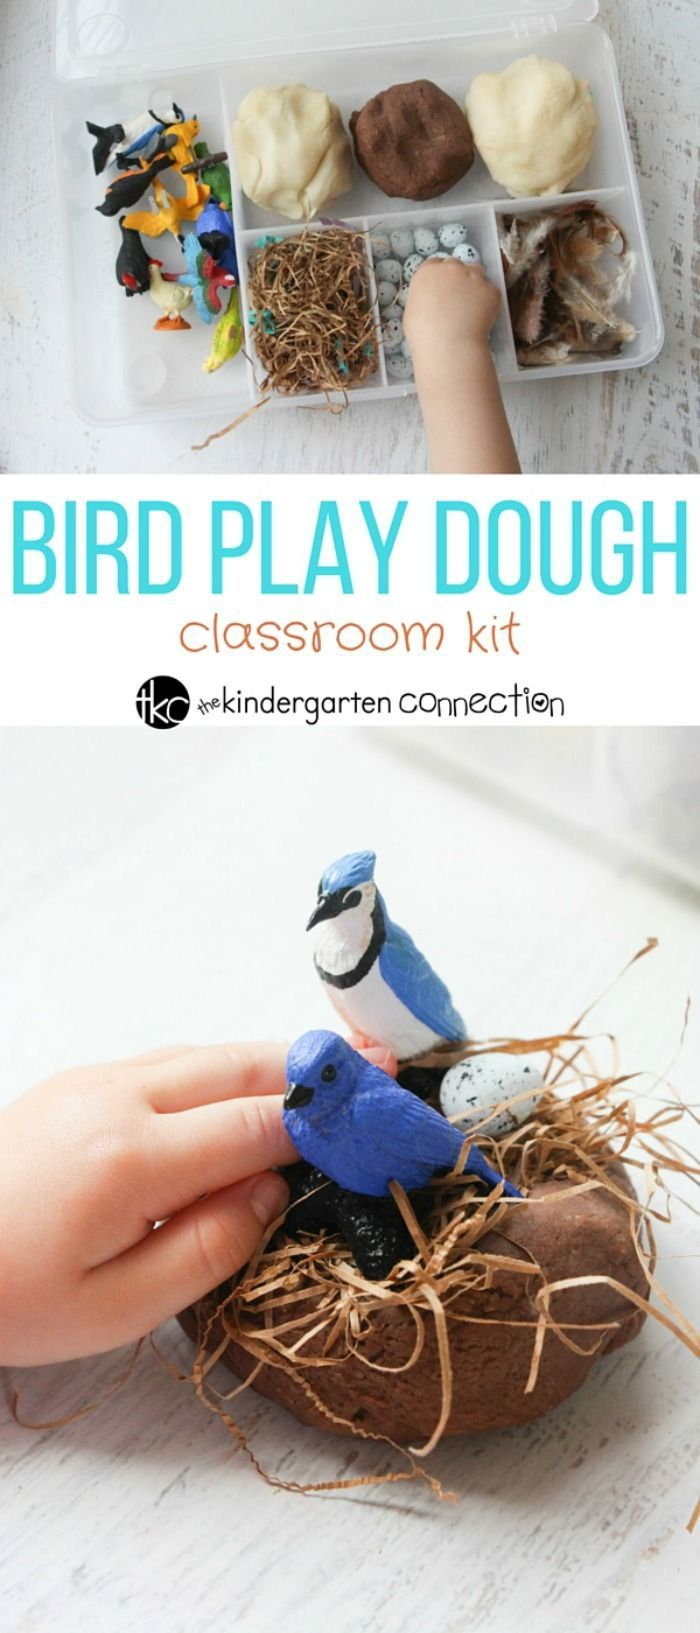 This bird themed play dough kit is perfect for spring, fall, or anytime! This sensory filled fun is great for hands on learning and play.